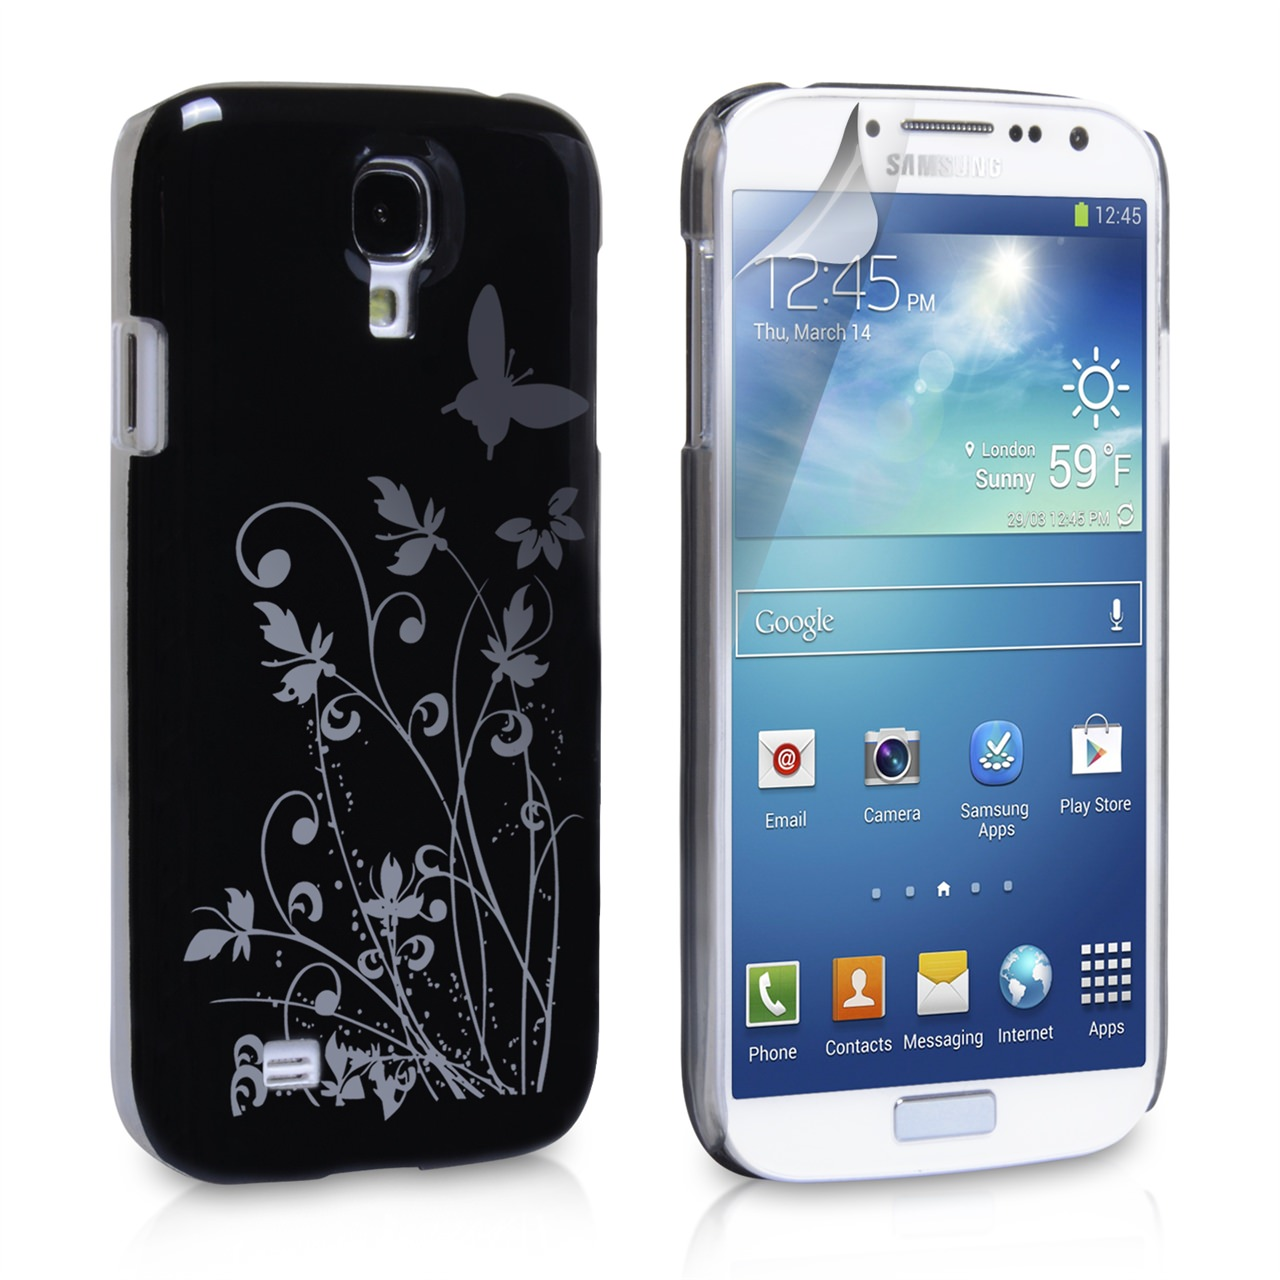 YouSave Samsung Galaxy S4 Floral Butterfly Hard Case - Black-Silver